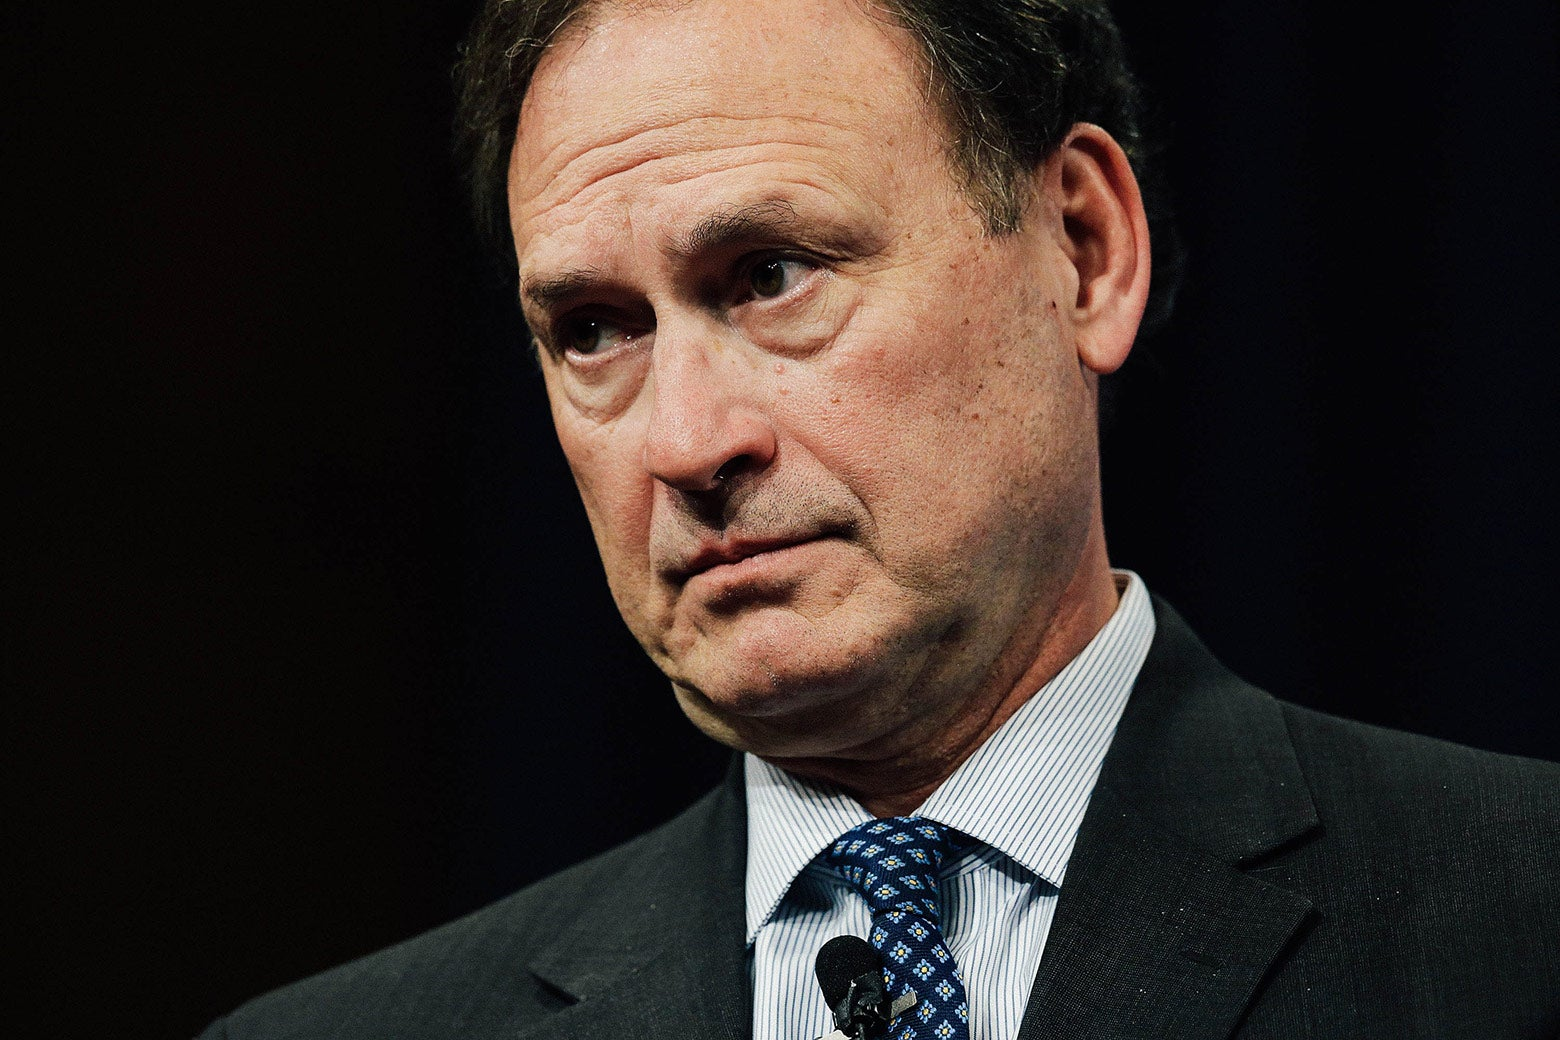 Supreme Court Associate Justice Samuel Alito speaks during the Georgetown University Law Center's third annual Dean's Lecture to the Graduating Class in the Hart Auditorium in McDonough Hall on Feb. 23, 2016, in Washington.